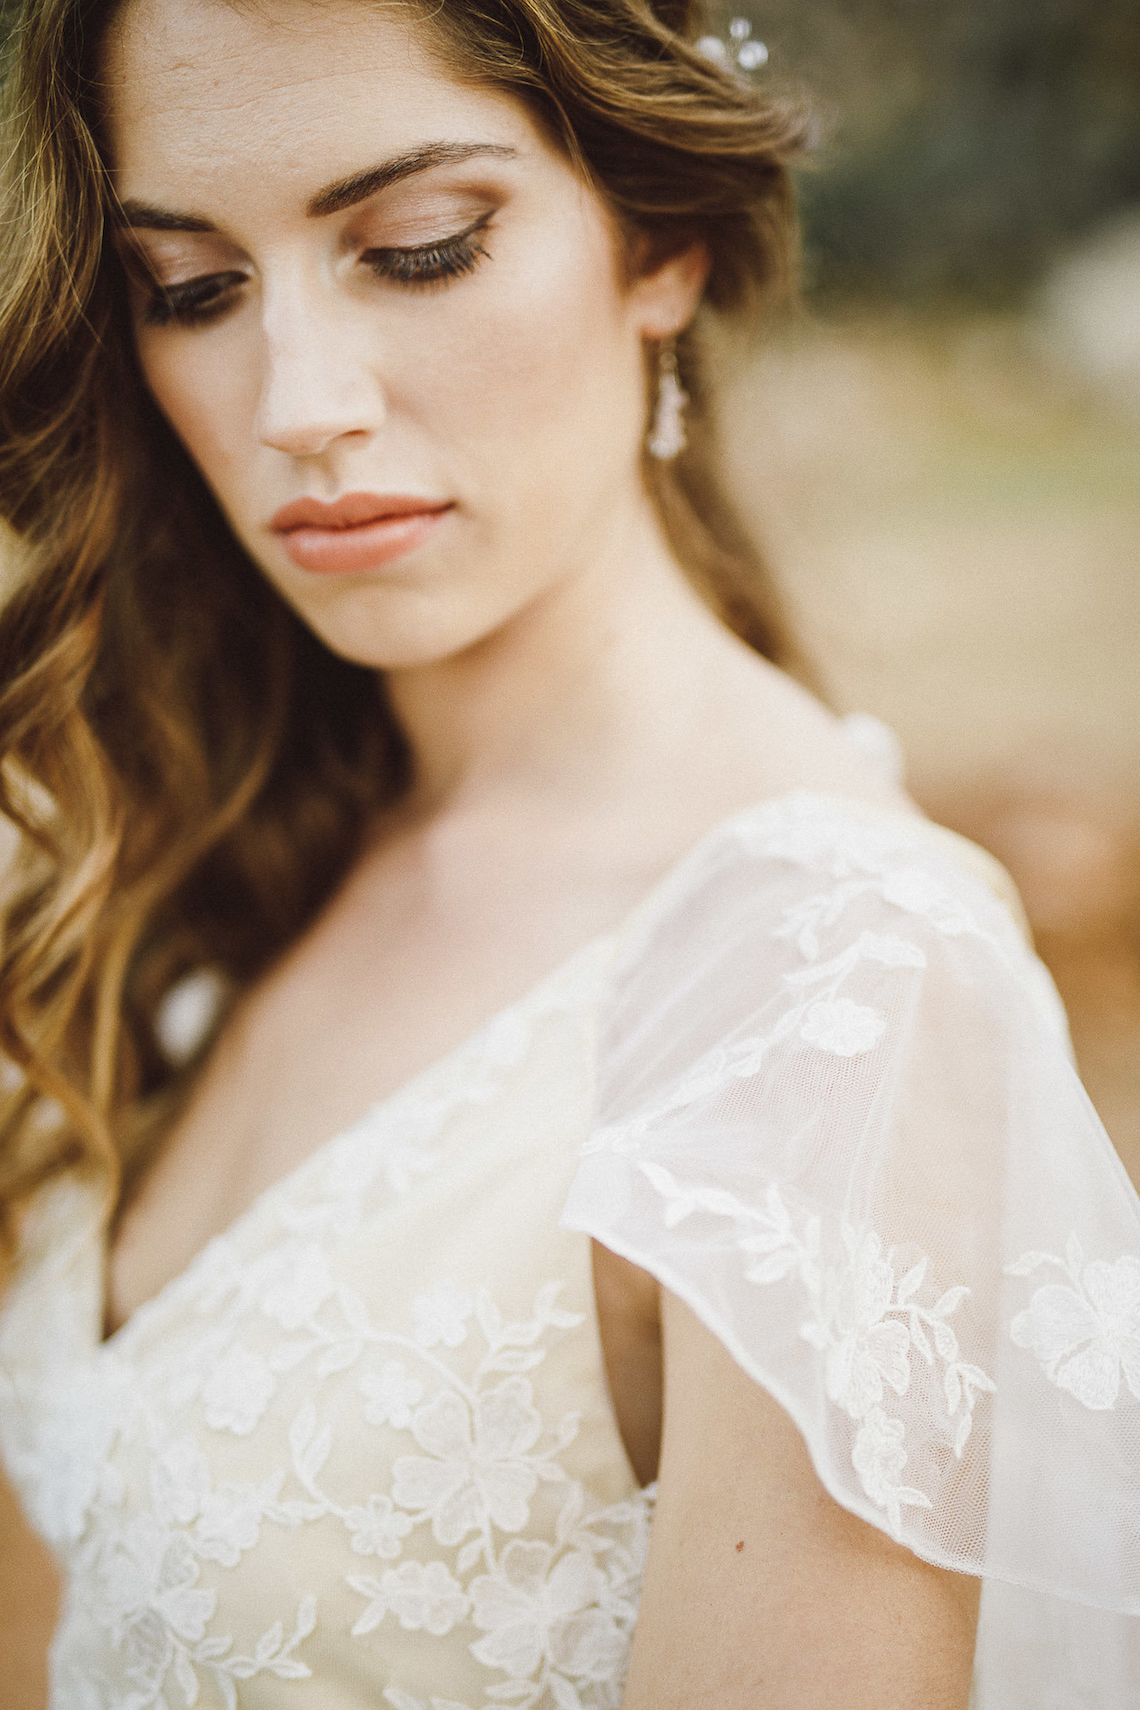 The Dreamiest Mallorca Mountain Bridal Inspiration – Vivid Symphony 62